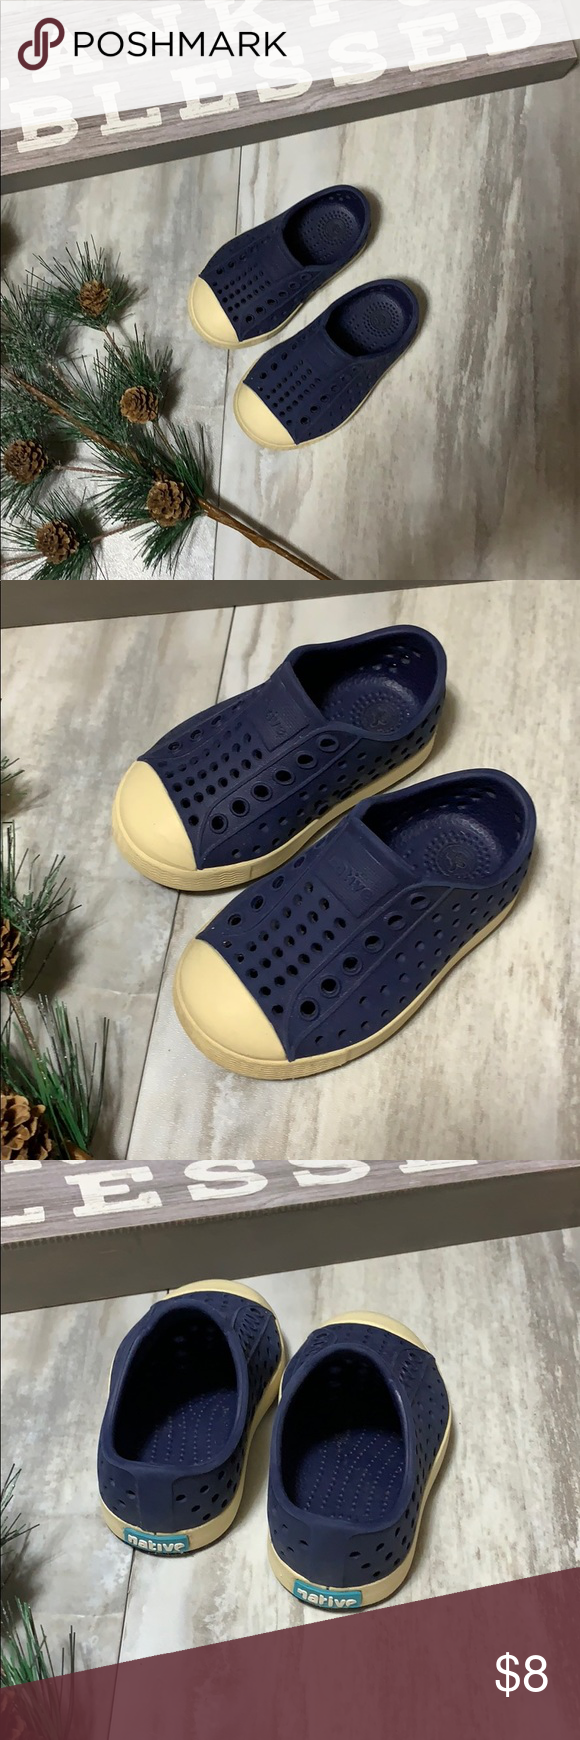 42ec056c7f4 Native Shoes size C5 in 2018